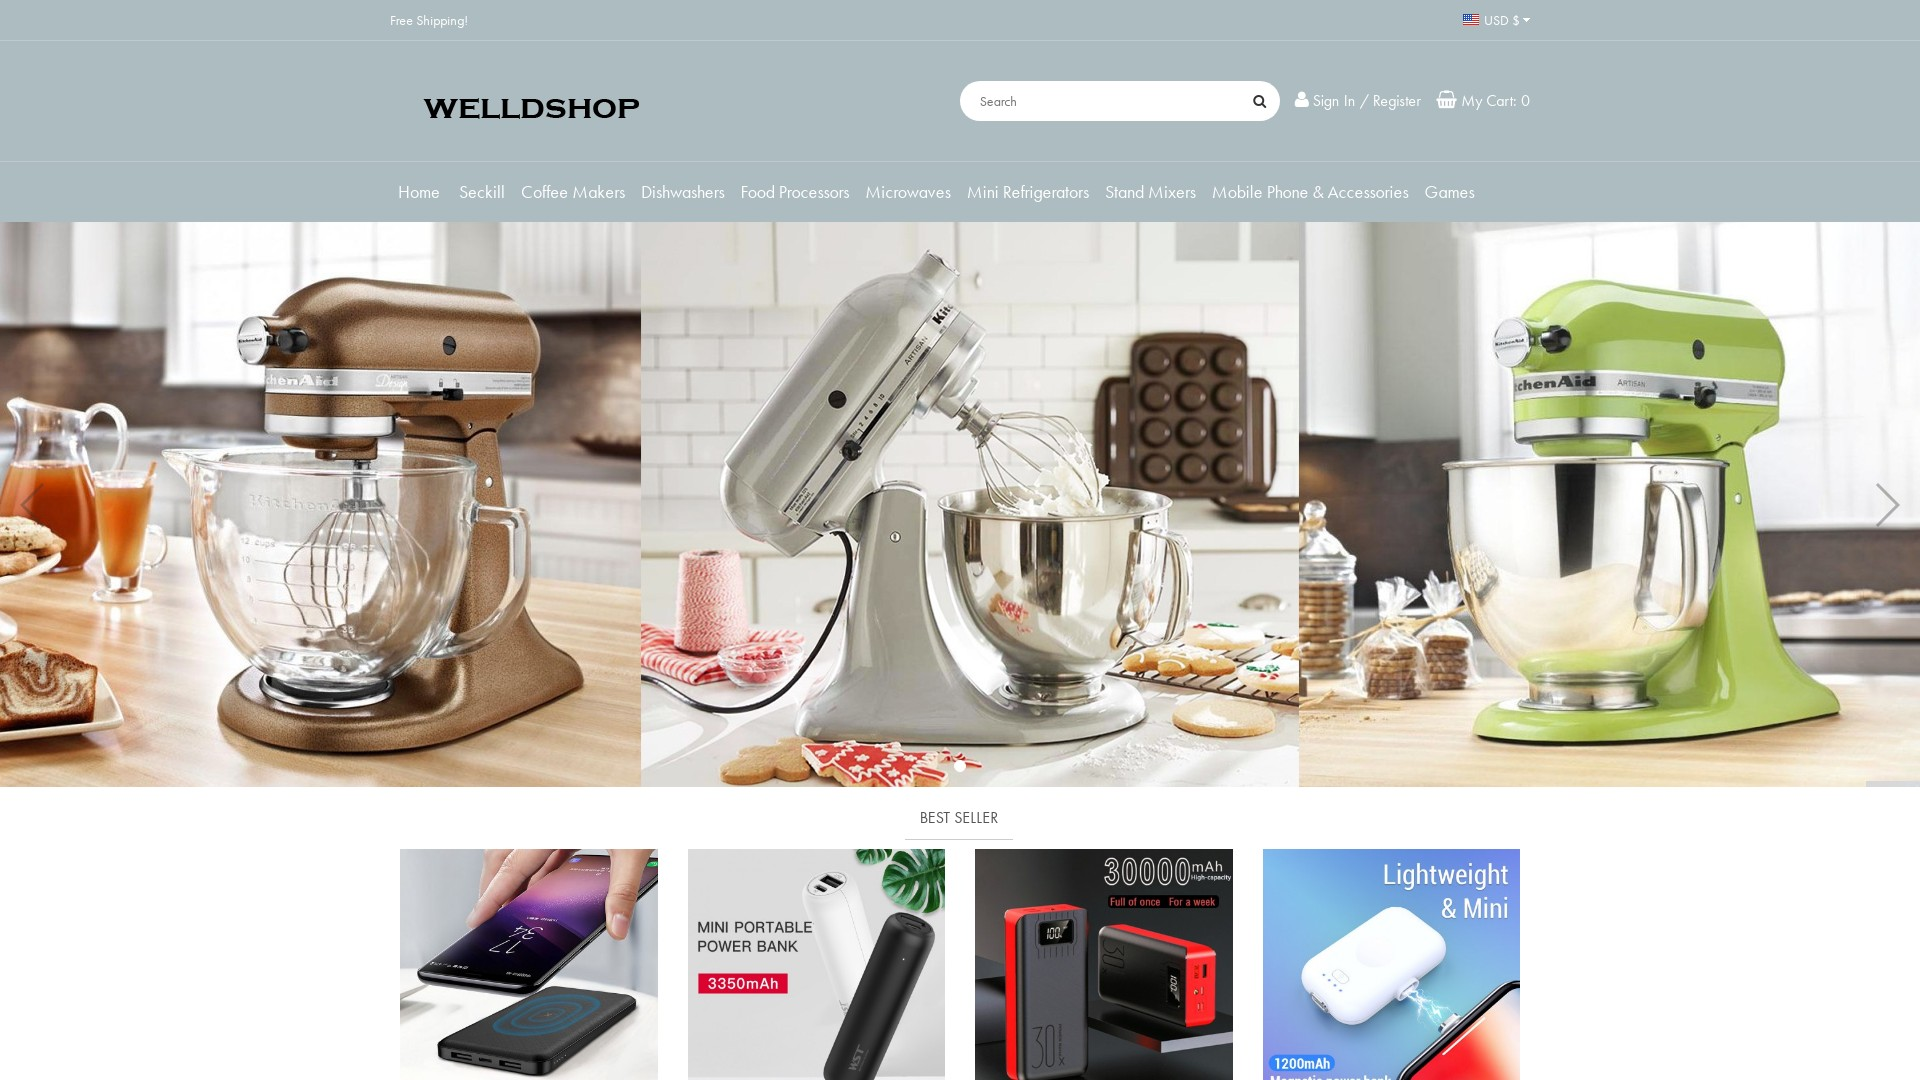 Is Sales.Welldshop.com a Scam? See the Review of the Online Store